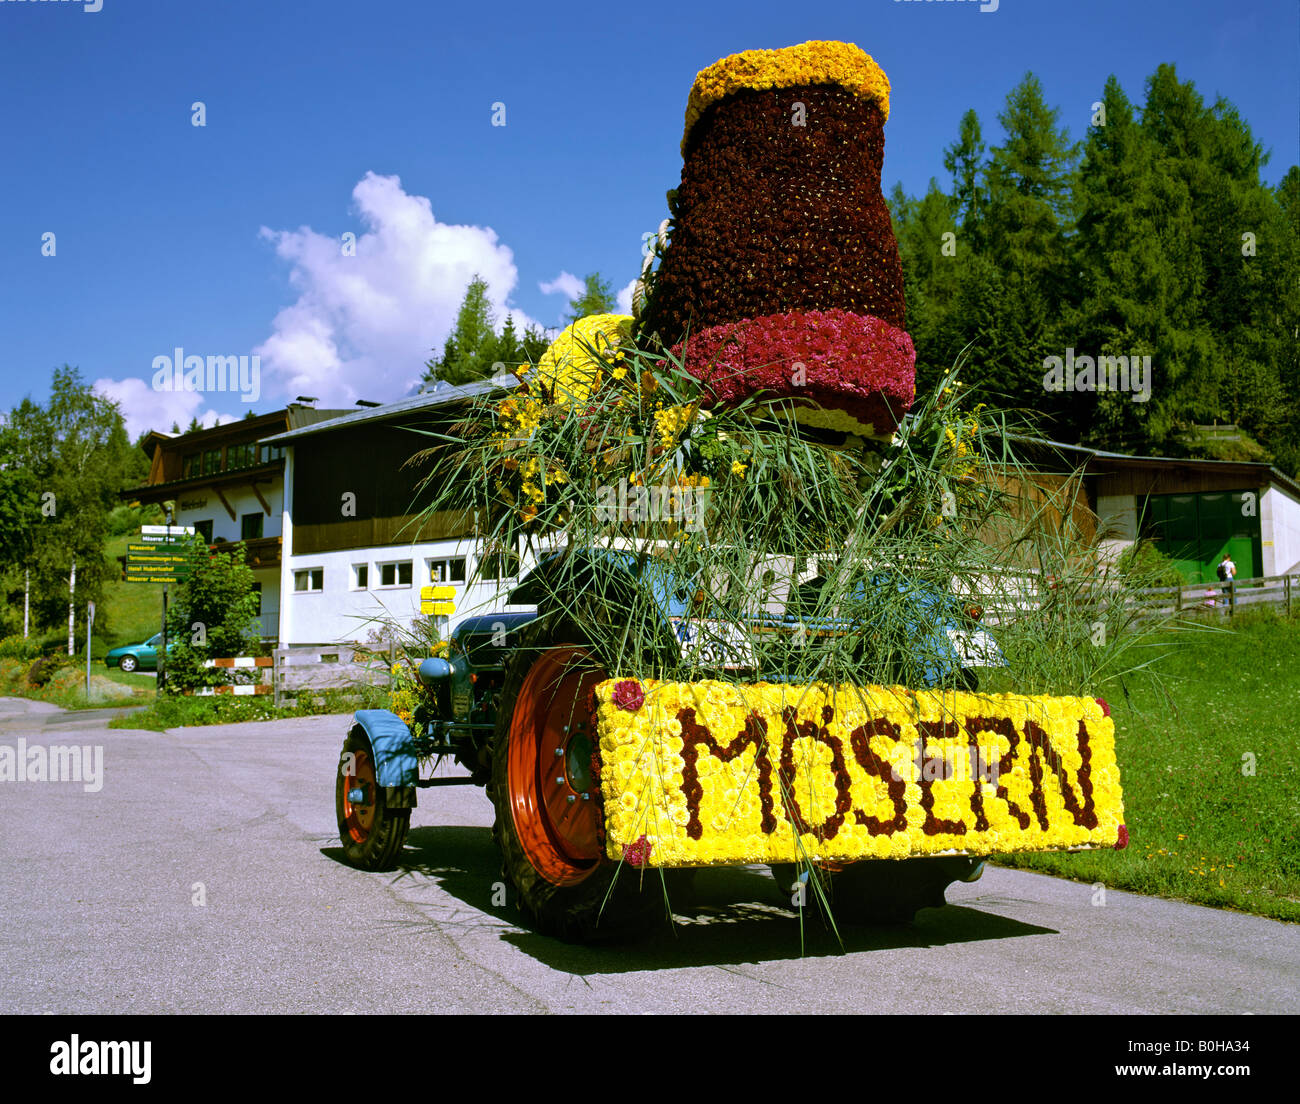 Parade float made of flowers, participant from Moesern, flower parade in Seefeld, Tirol, Austria - Stock Image